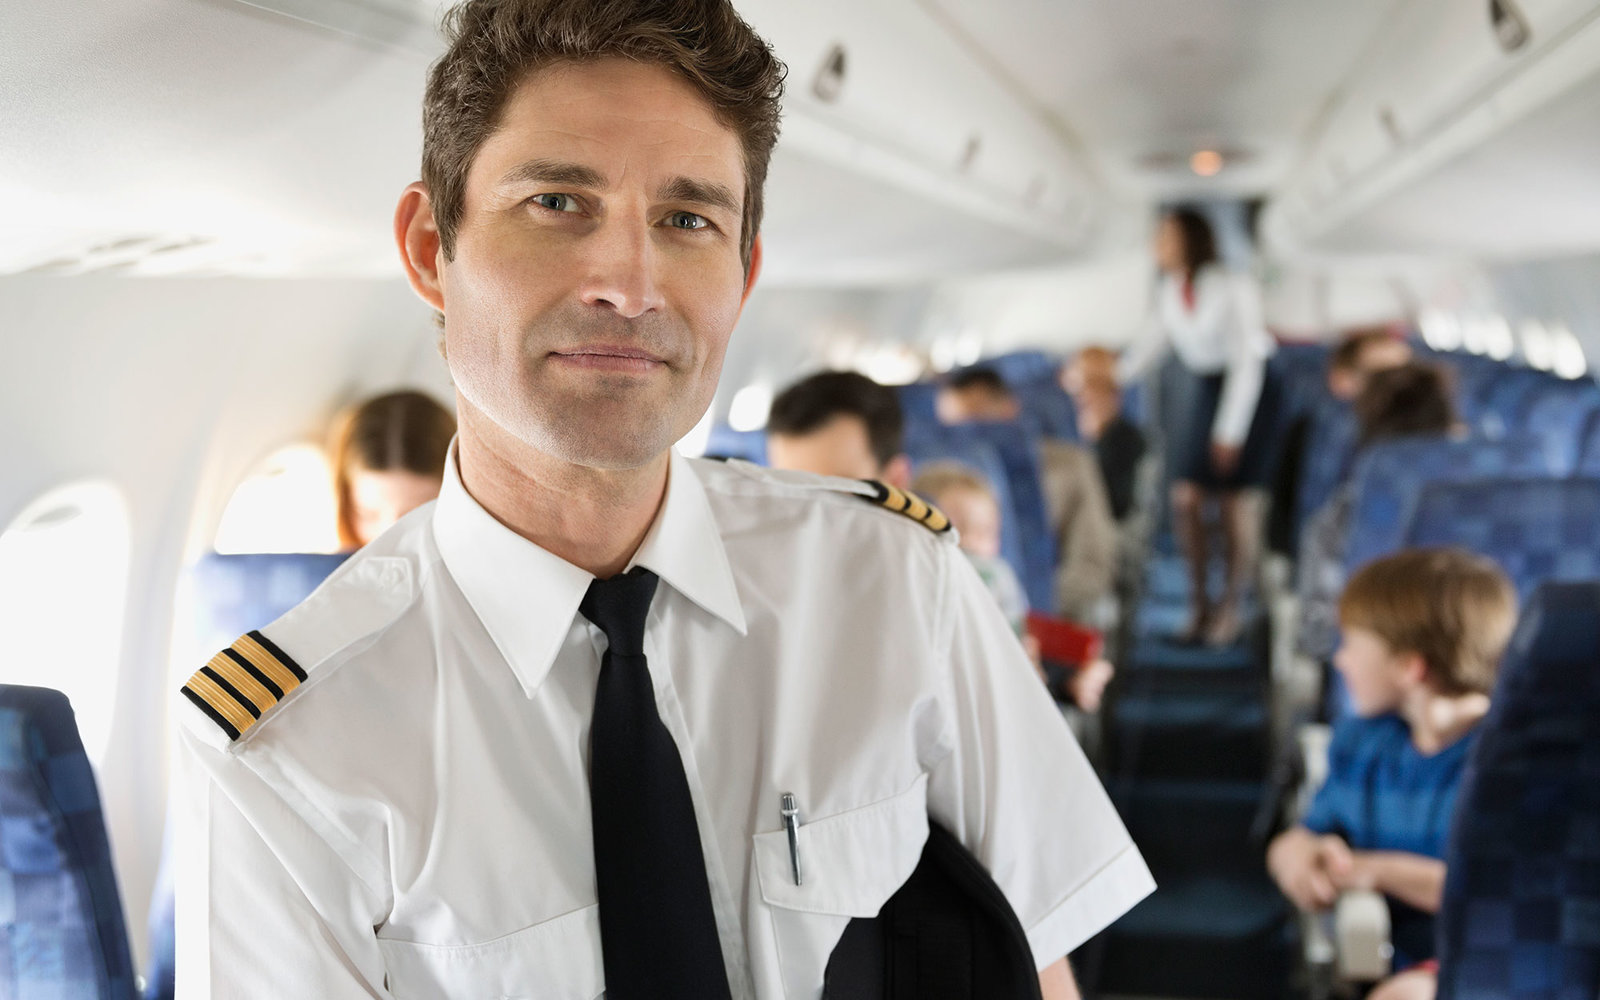 Portrait of male pilot in airplane cabin